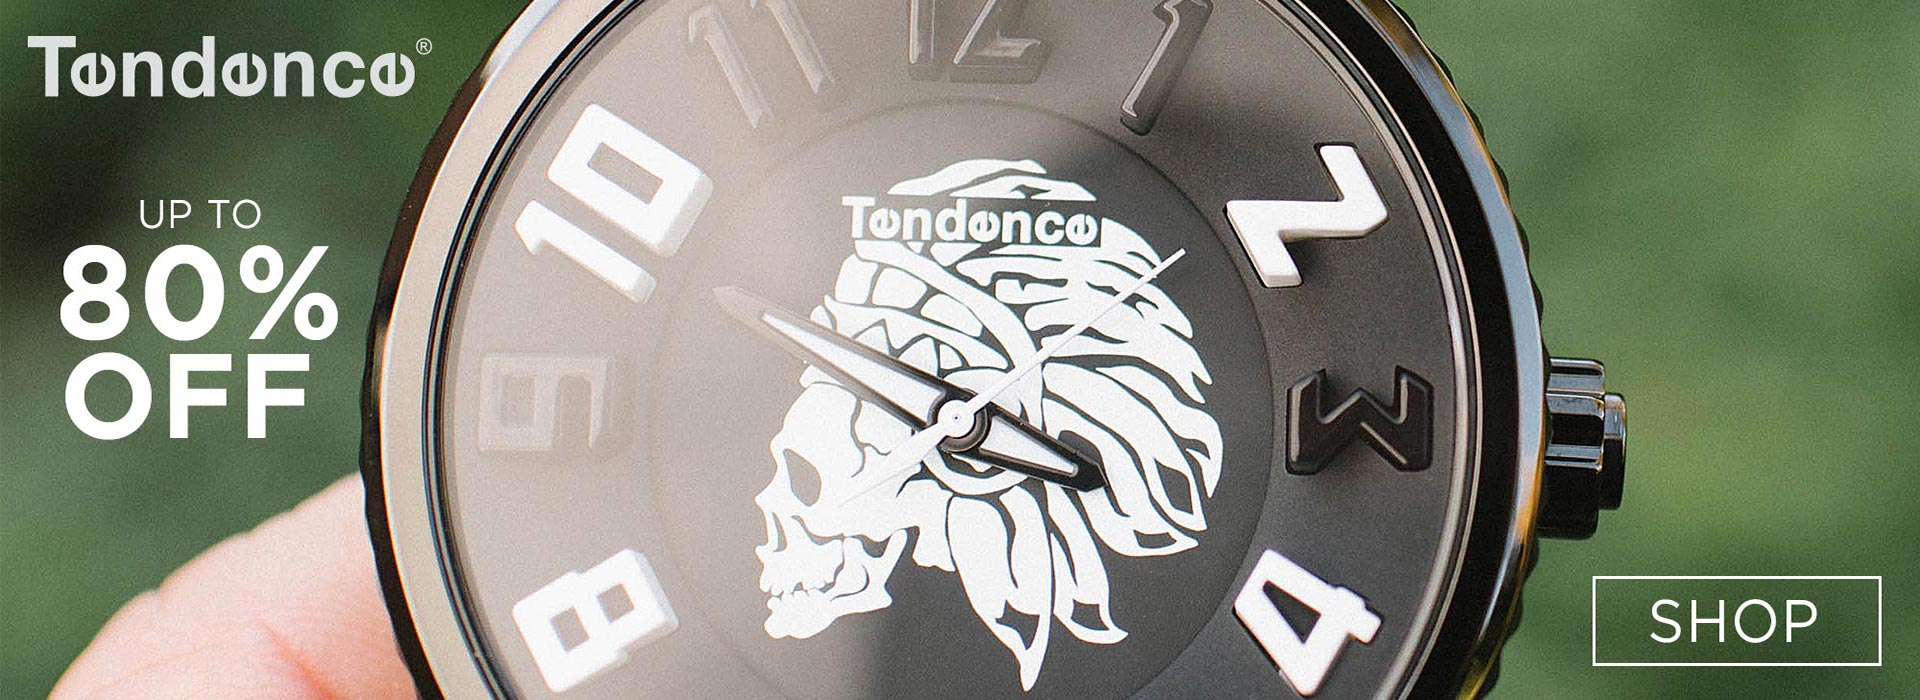 Tendence Sale - up to 80% off